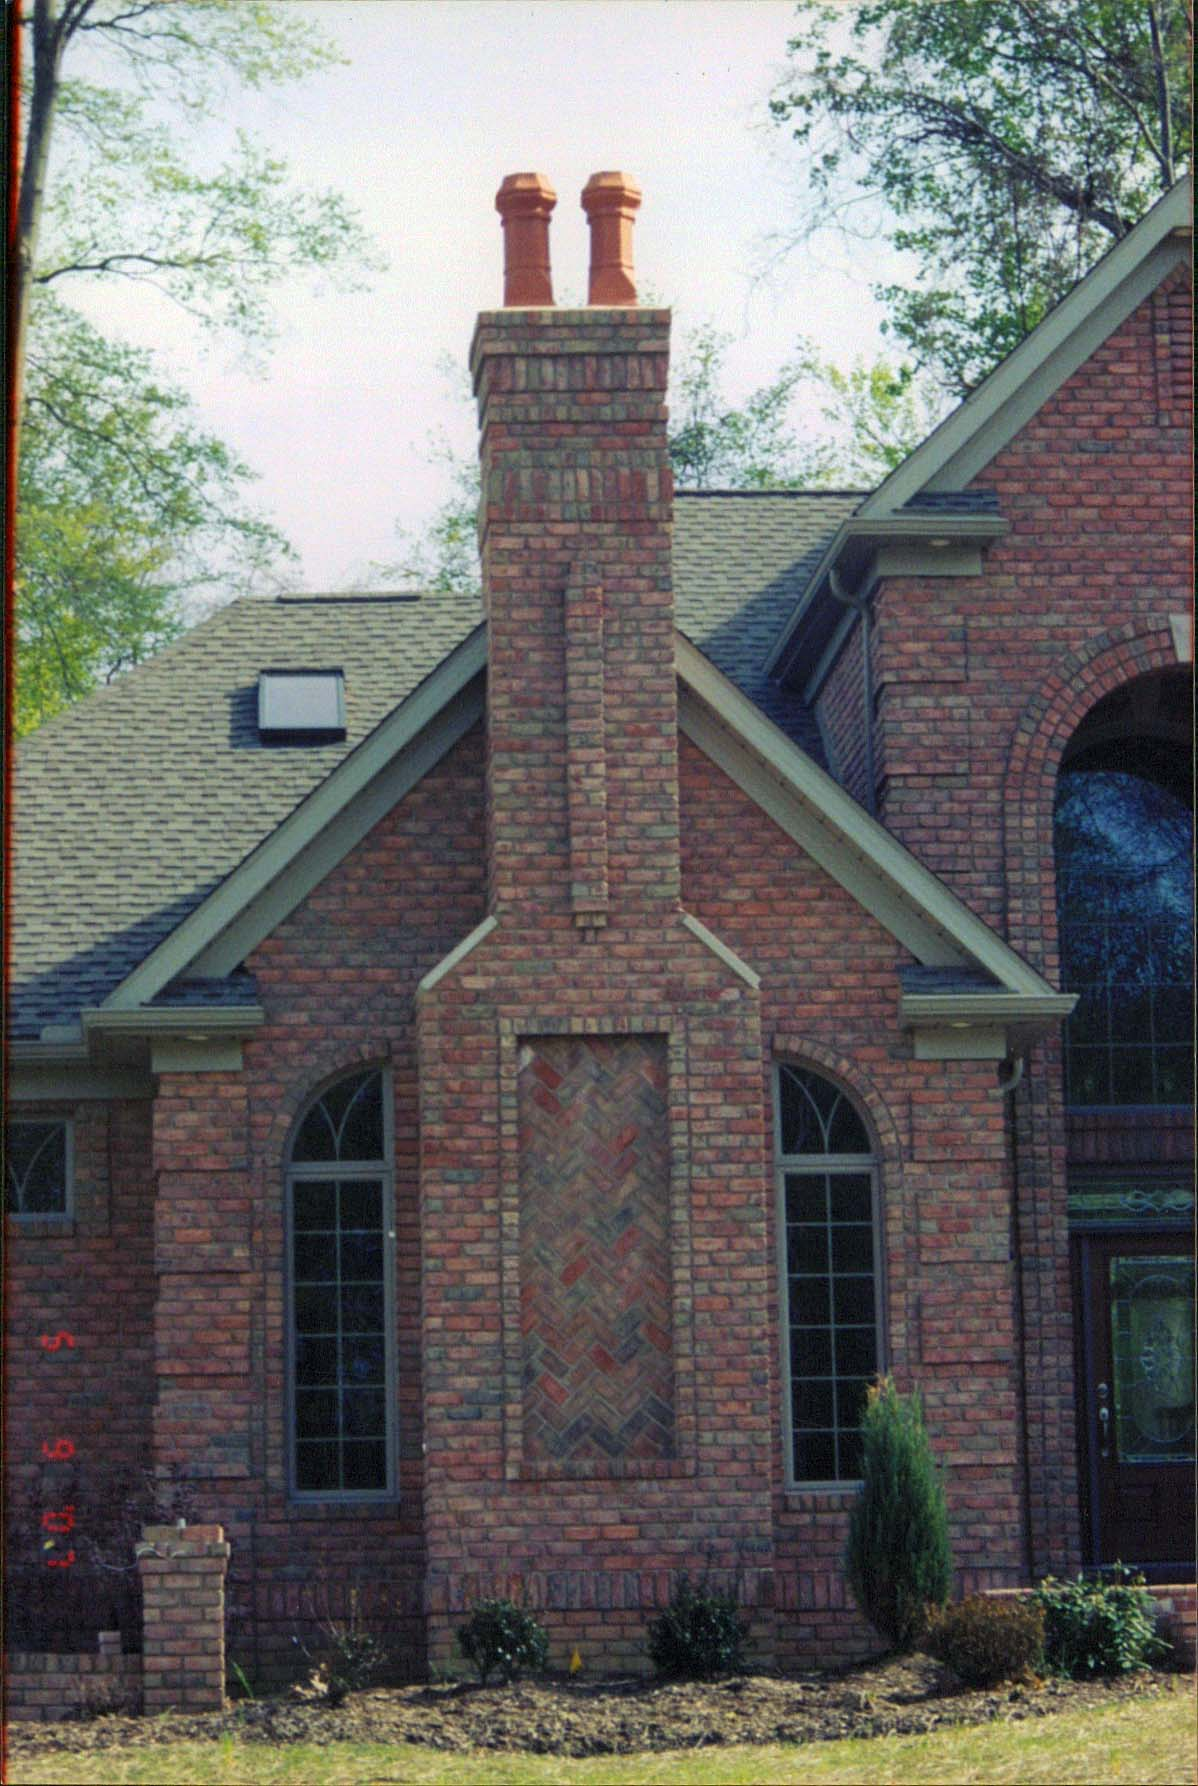 sittin pin bronze royale chimneyking style a from fireplace in crown outdoor atop chimney dk is com